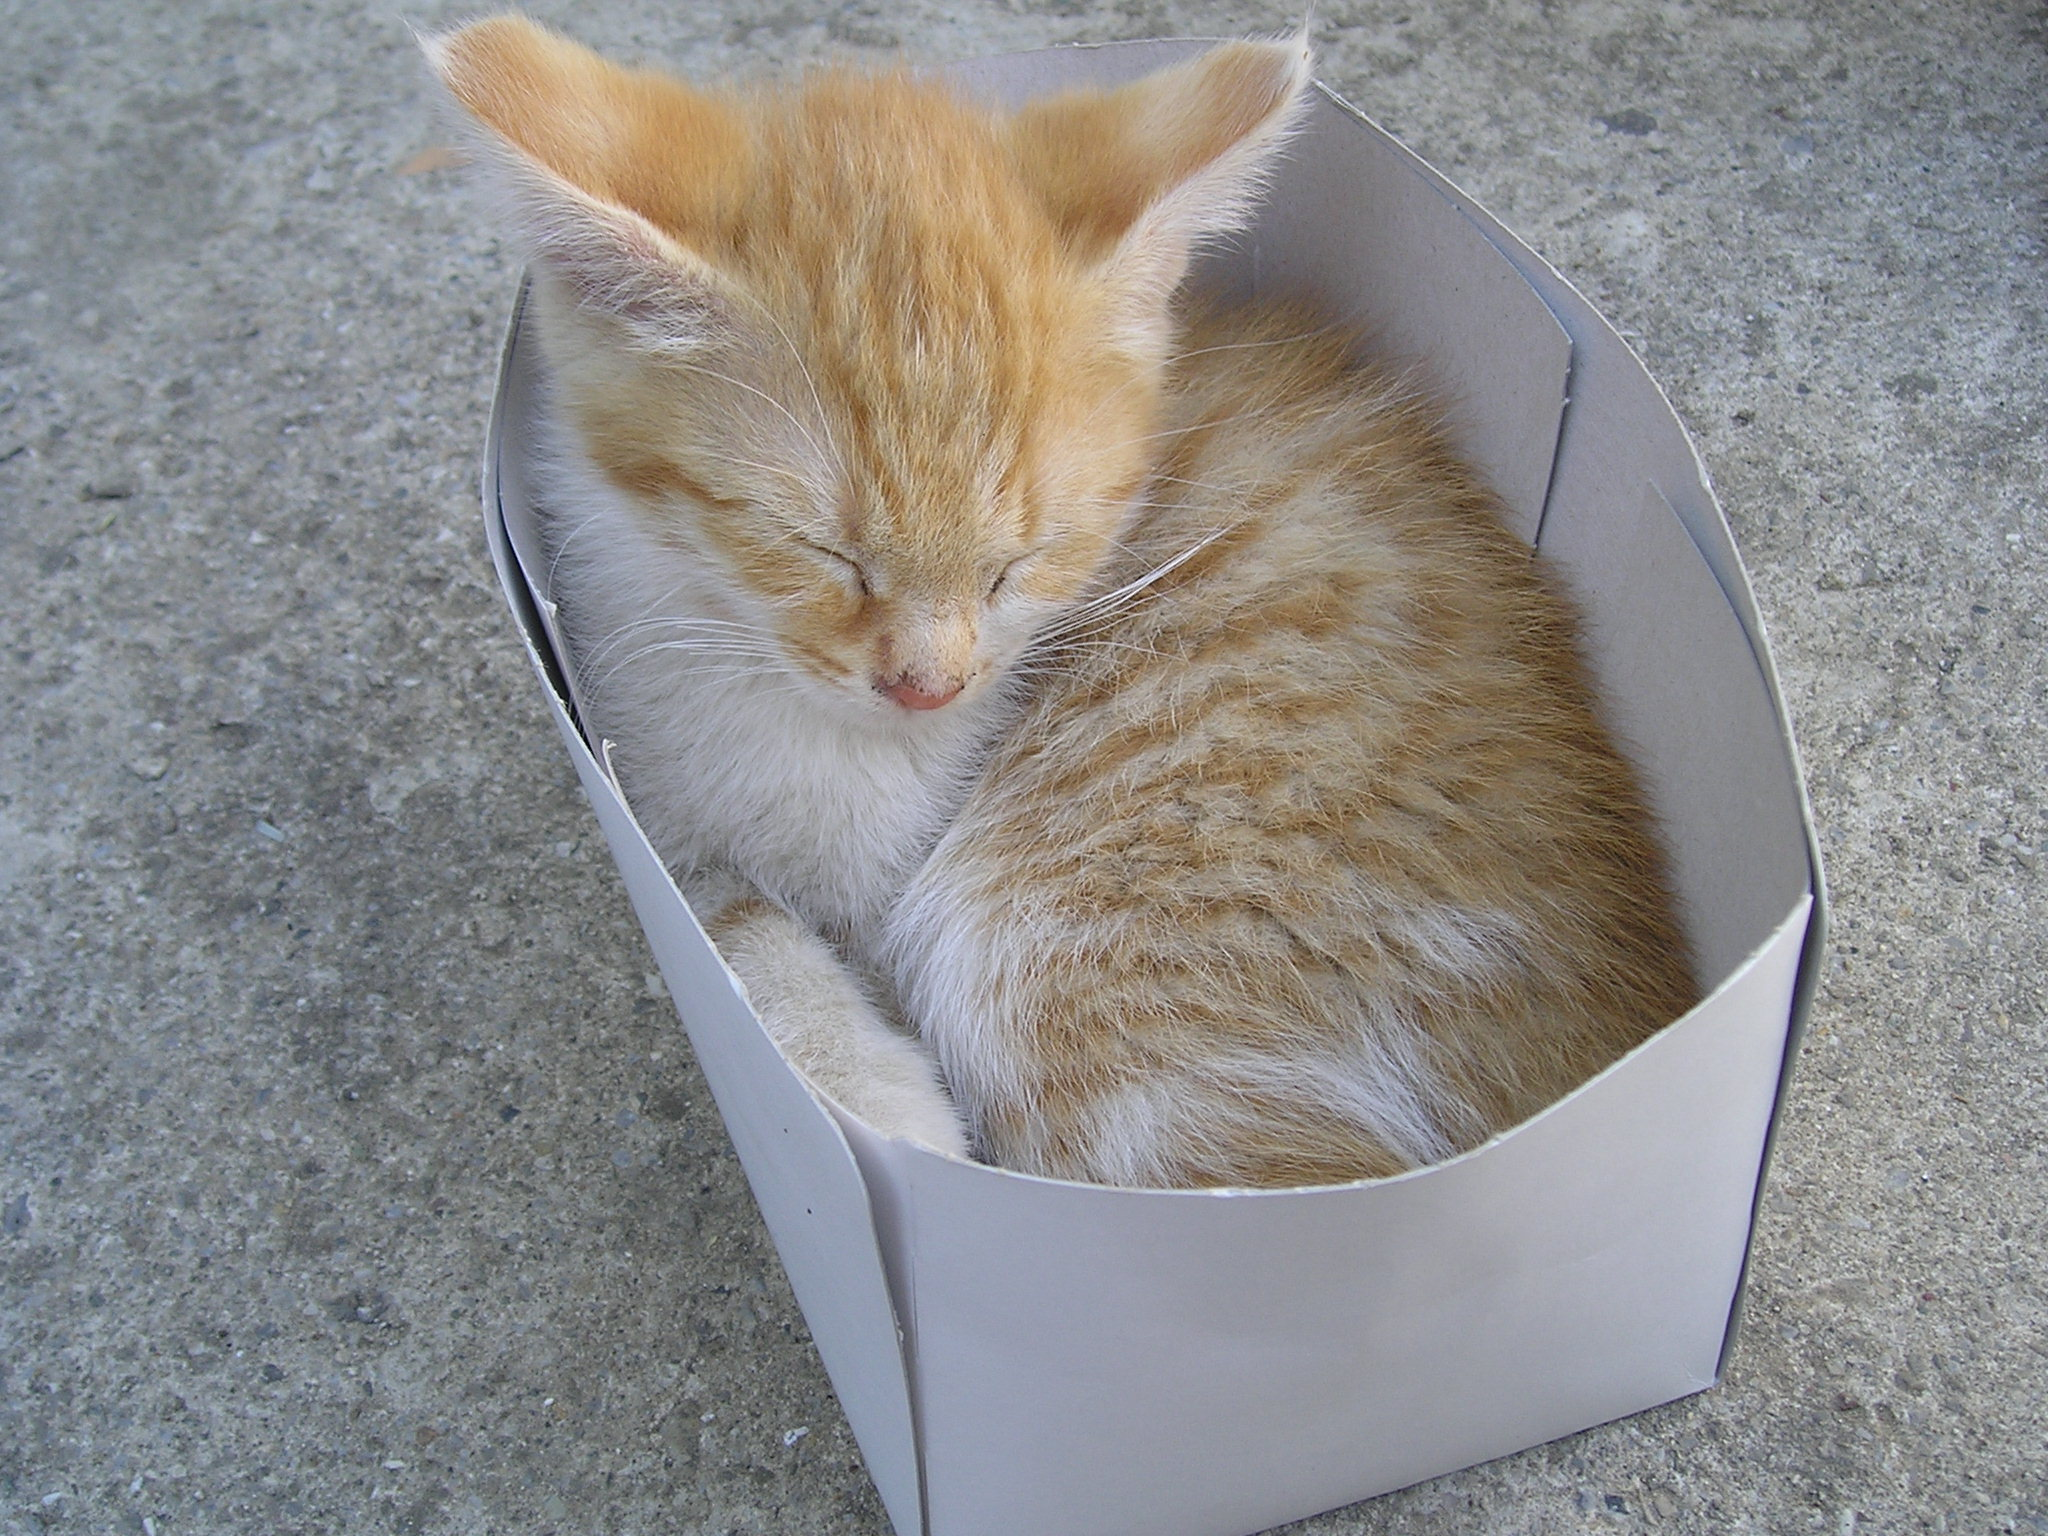 Cat into the box